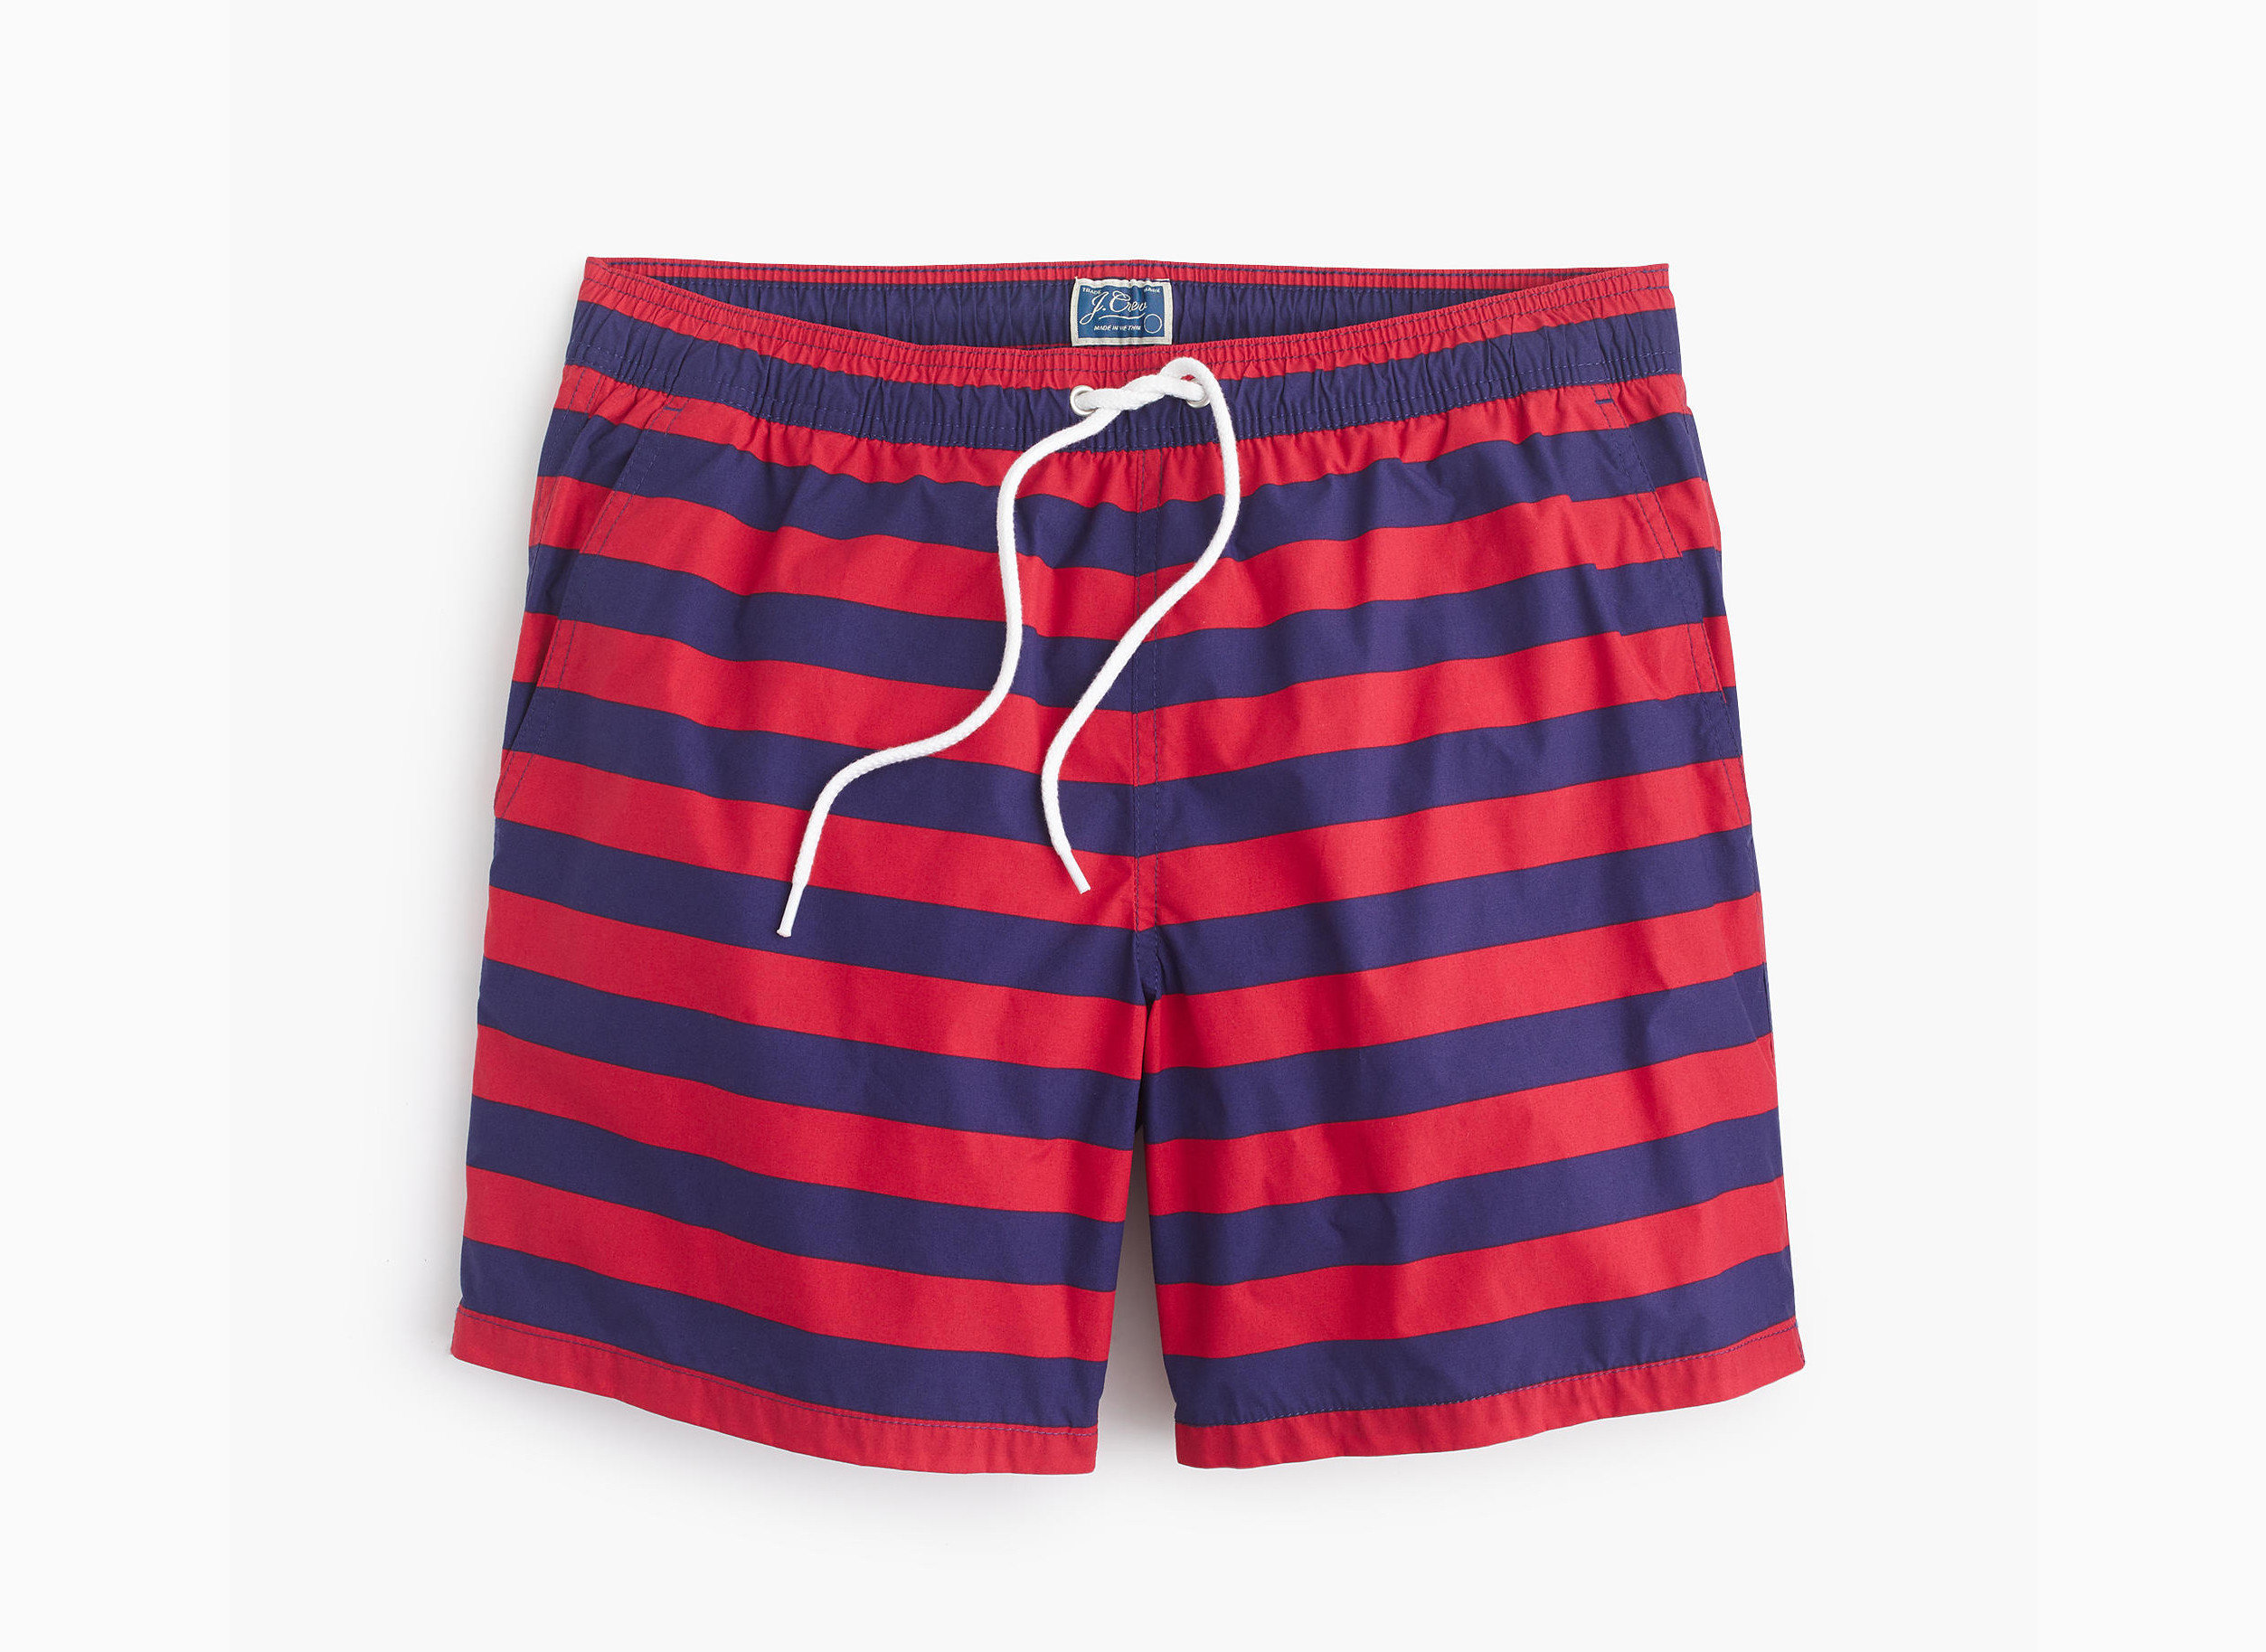 Style + Design clothing red active shorts trunks shorts product pattern Design striped underpants plaid tartan